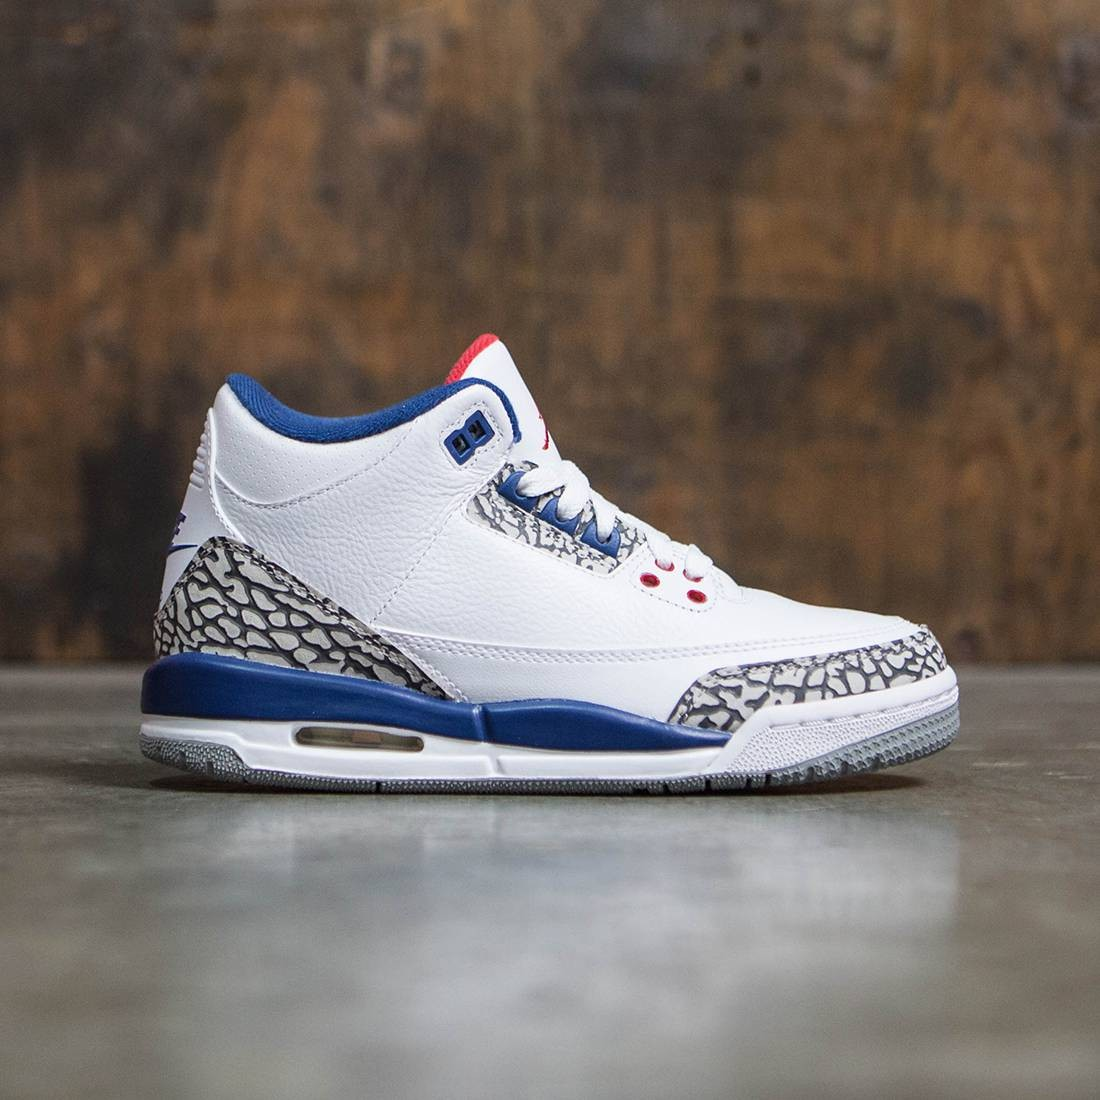 brand new f74d2 1ba28 Jordan Big Kids AIR JORDAN 3 RETRO OG BG True Blue (white   fire red-true  blue-cement grey)